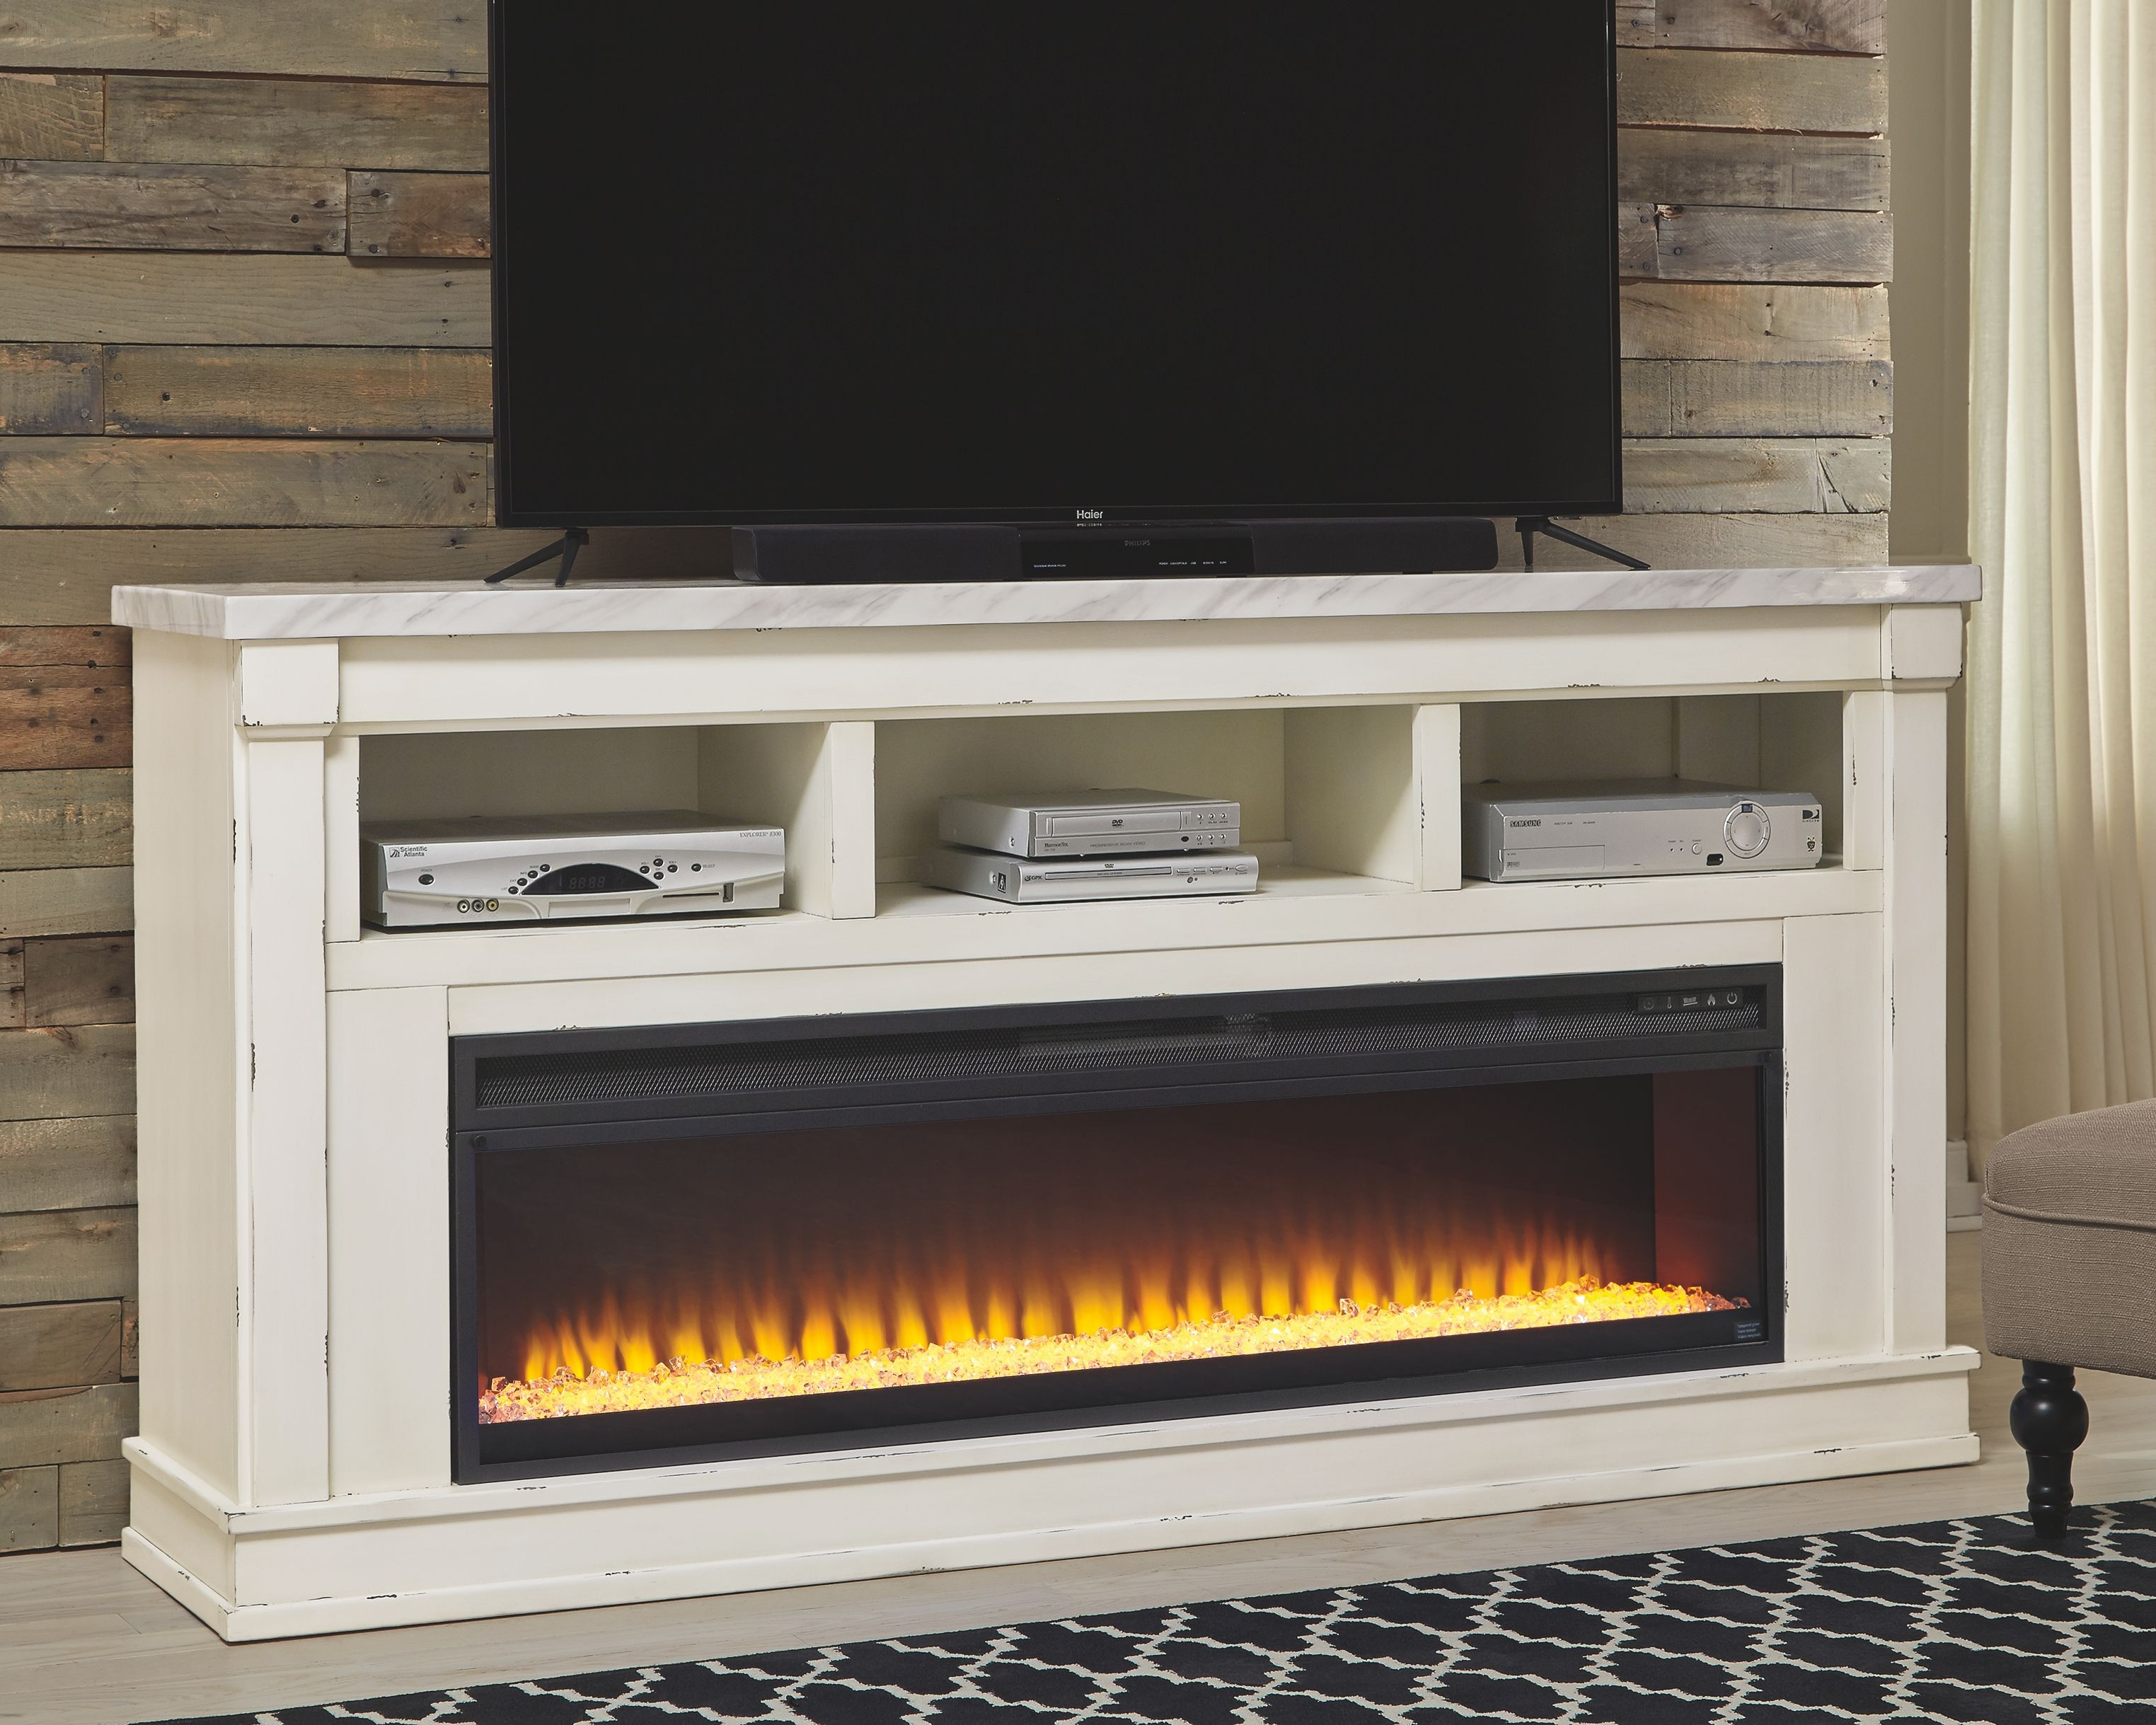 Becklyn Tv Stand With Fireplace Chipped White Tv Stand With Fireplace Insert Electric Fireplace Tv Stand White Electric Fireplace